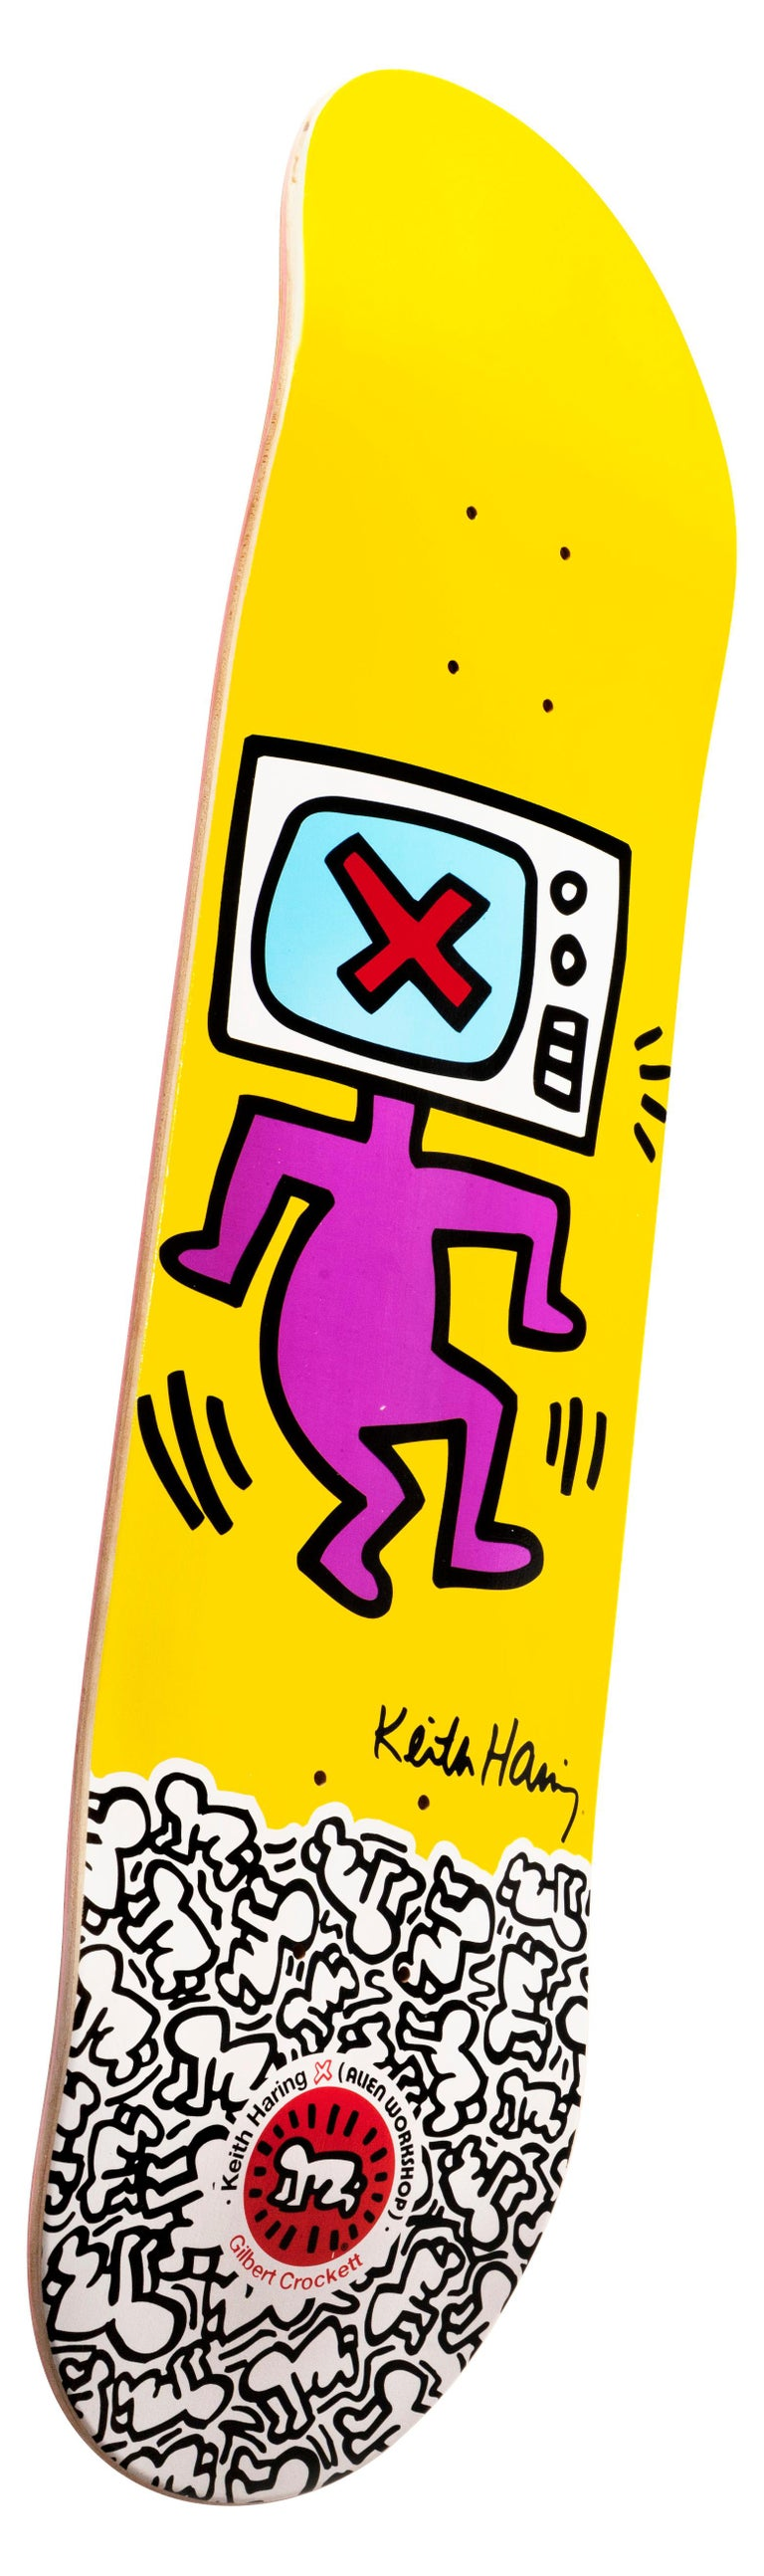 Keith Haring TV Head Skate Deck (Keith Haring yellow) - Art by (after) Keith Haring